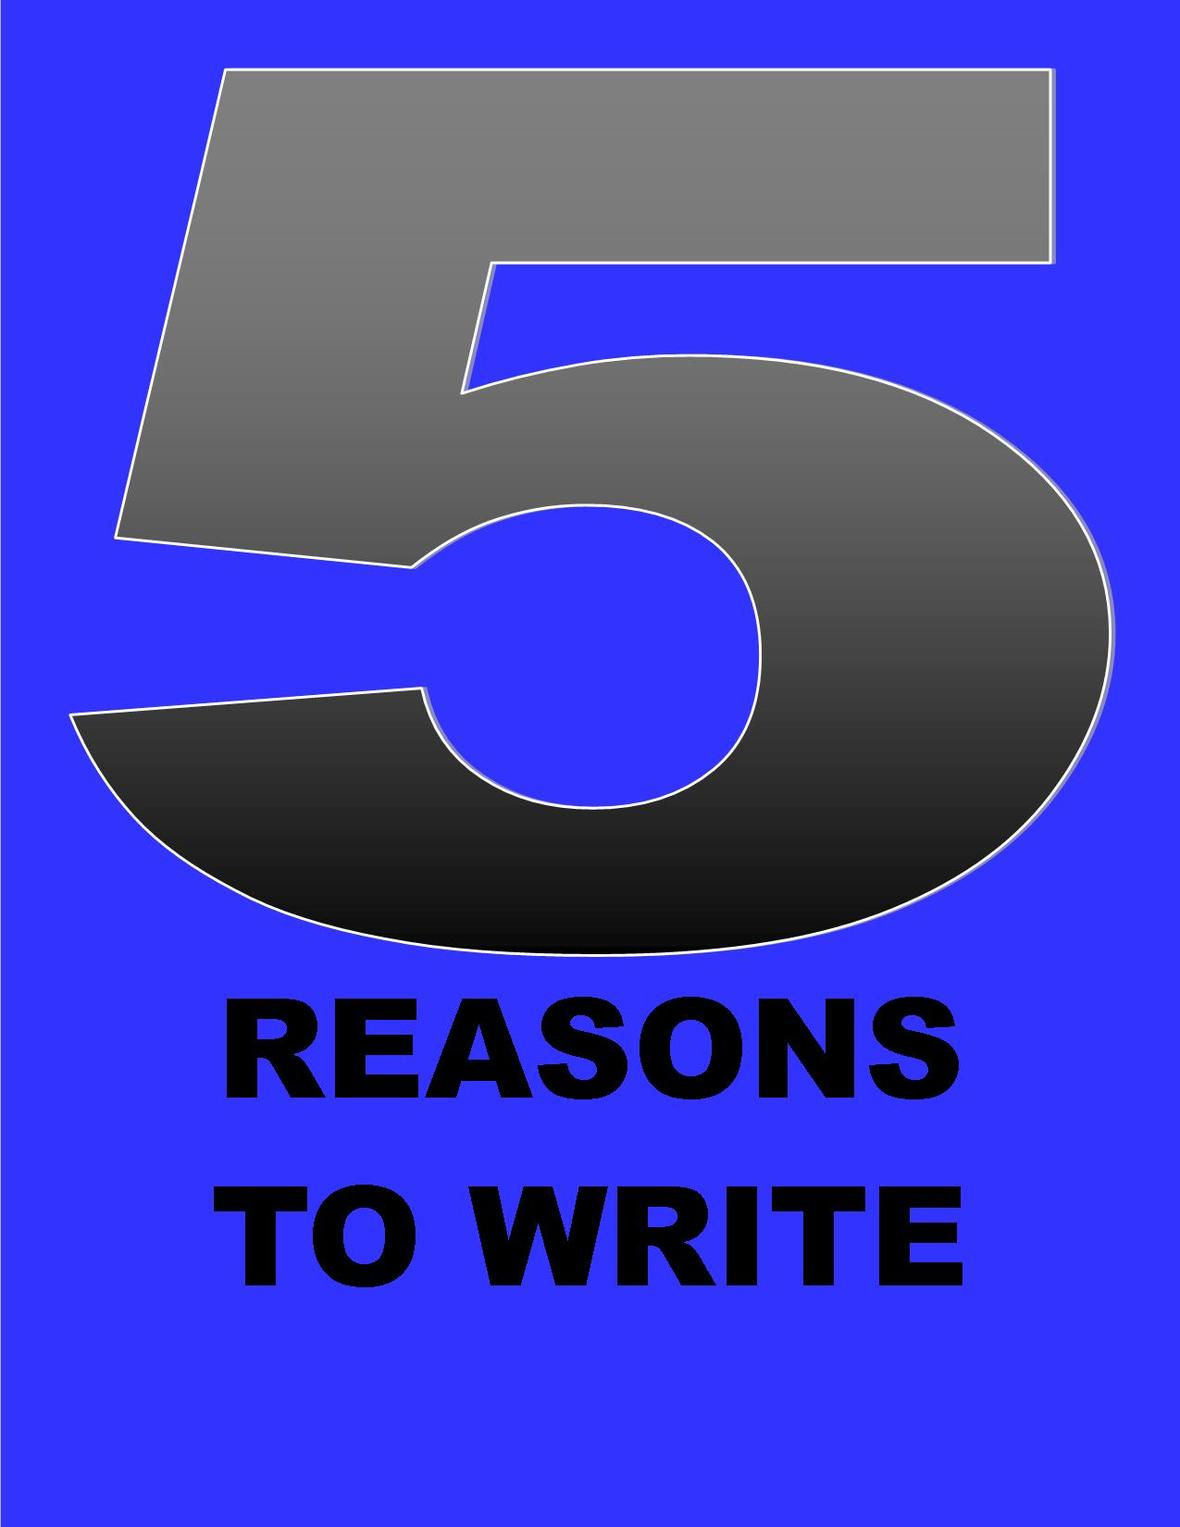 5 REASONS TO WRITE